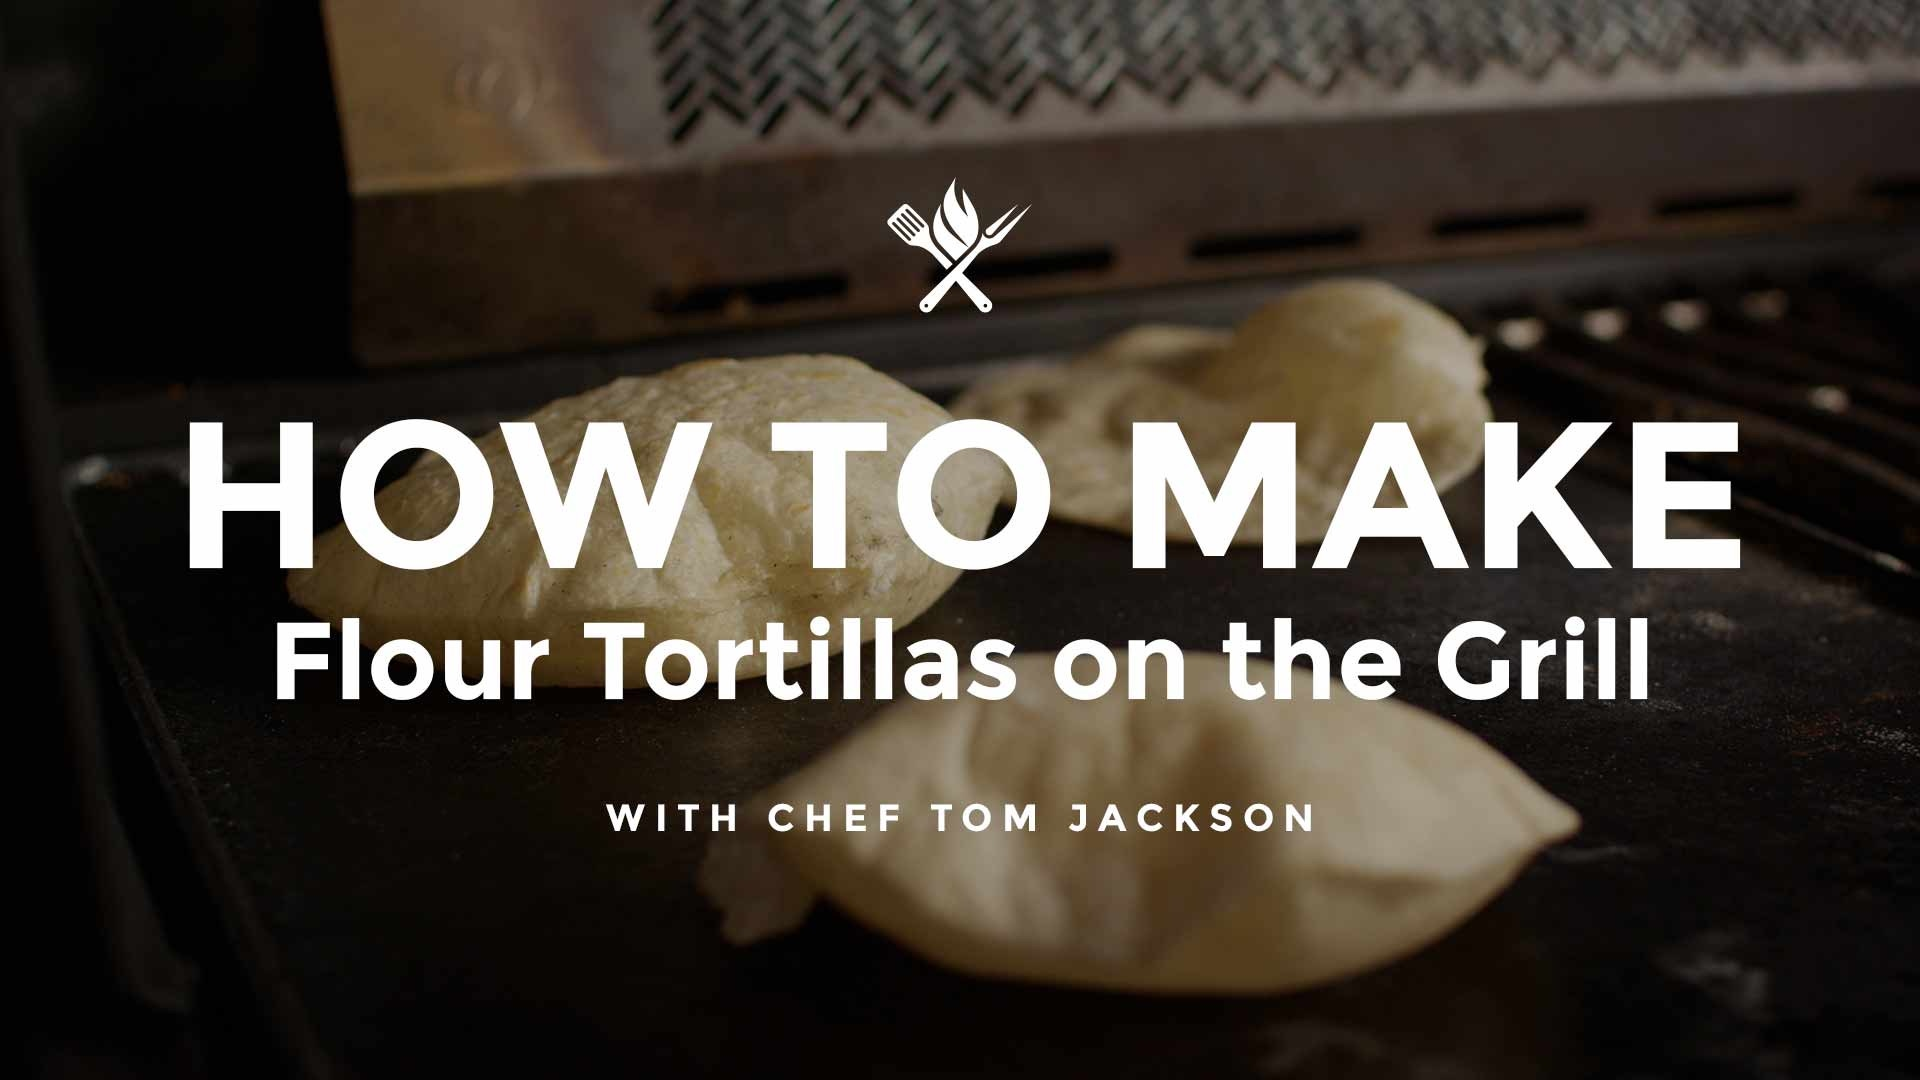 How to Make Flour Tortillas on the Grill